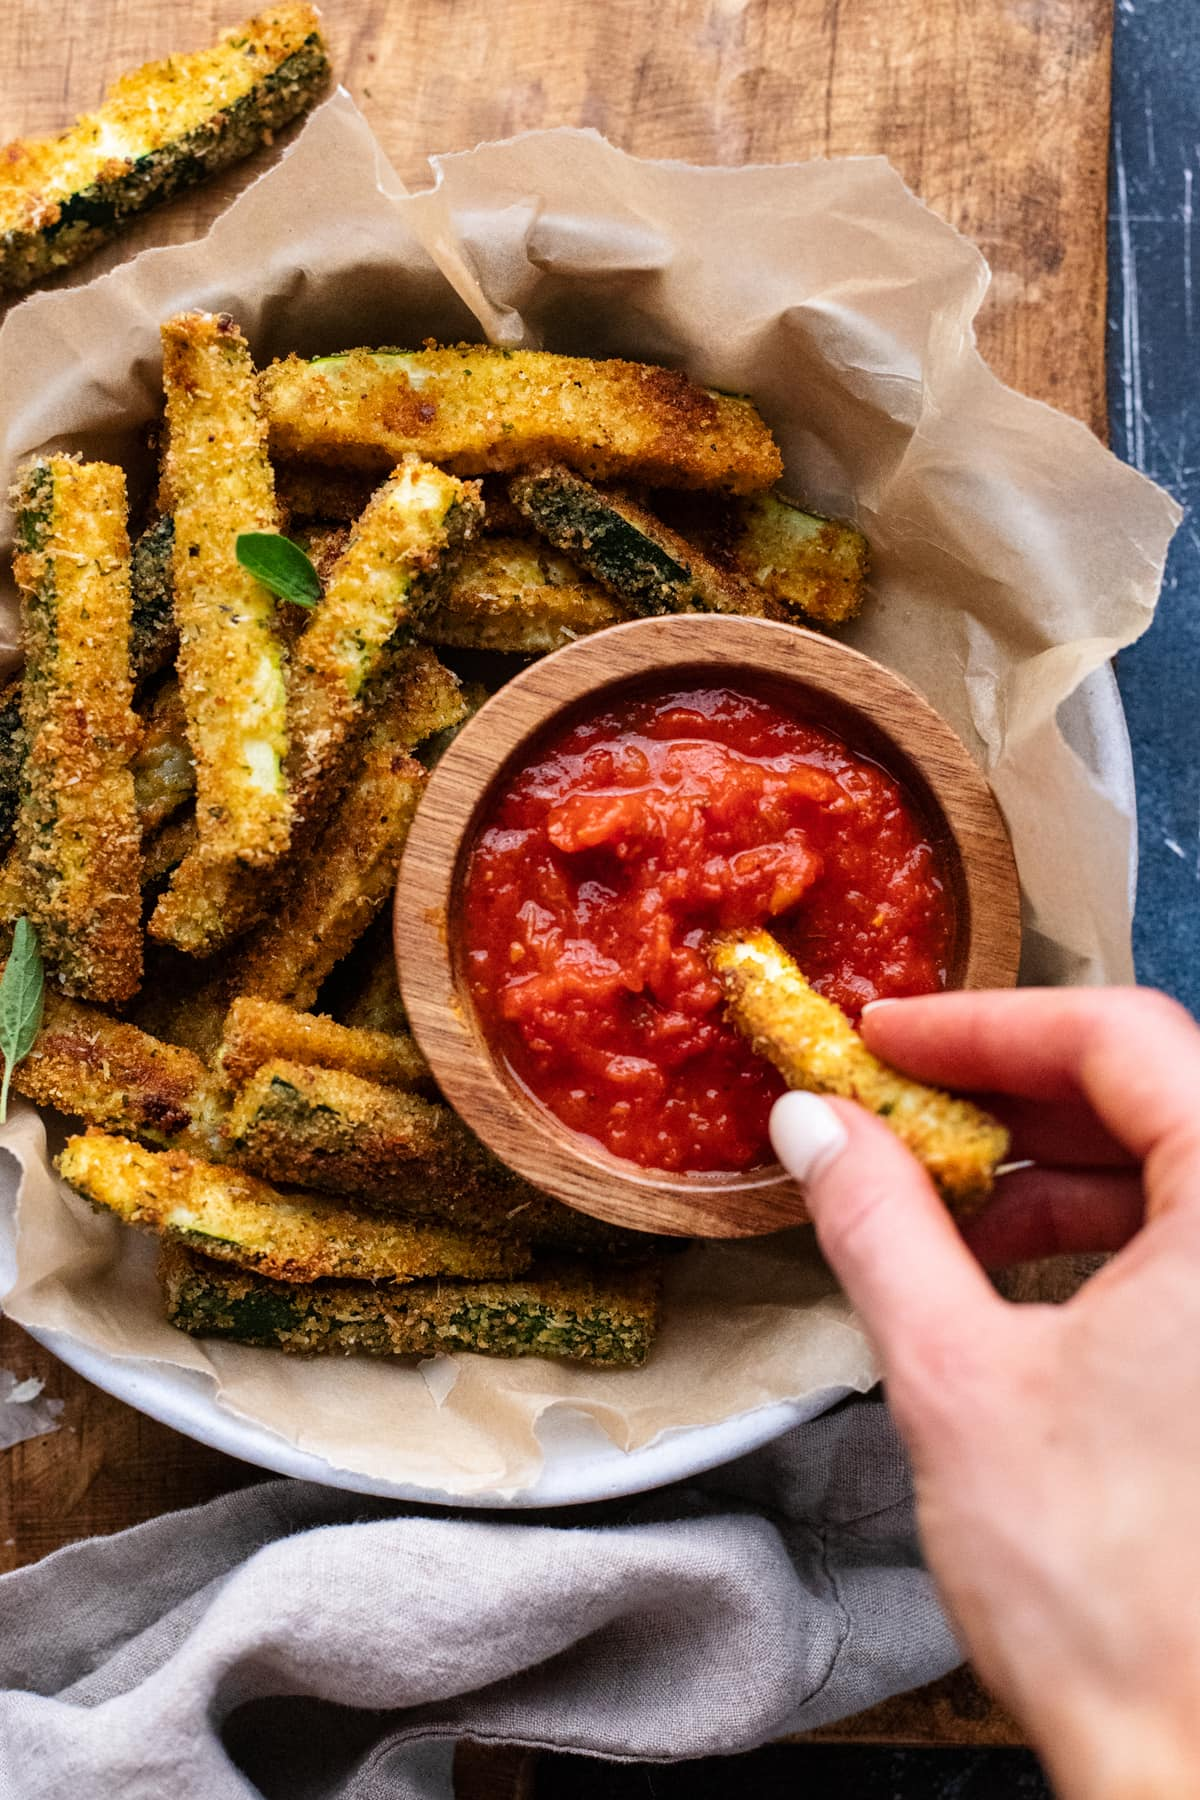 hand dipping zucchini fry into small dish with red tomato sauce in it in larger bowl filled with zucchini fries in it.